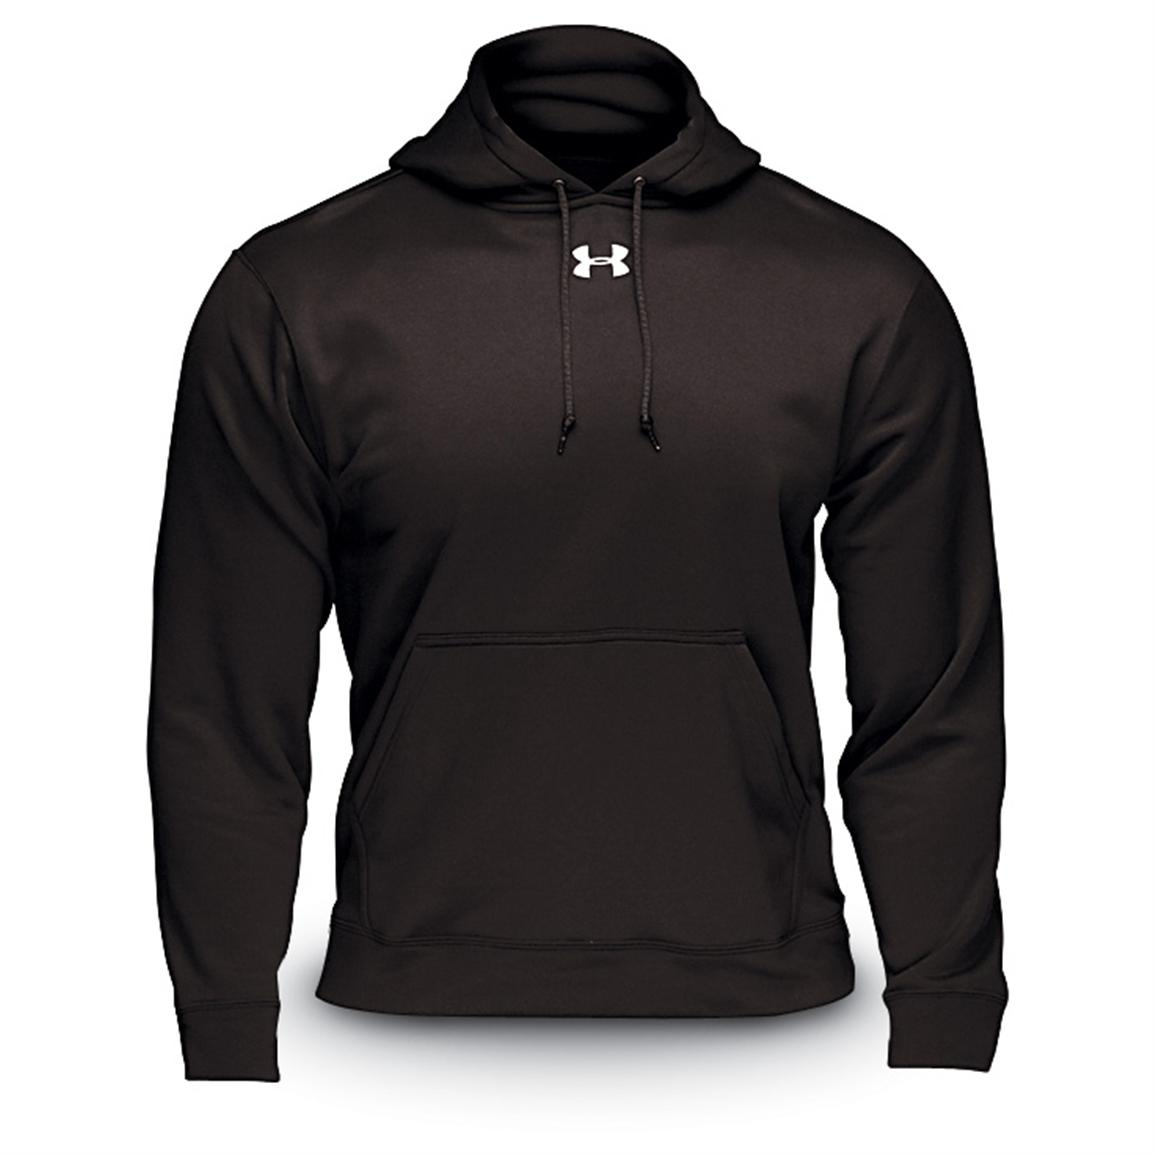 Mens under armour hoodies on sale